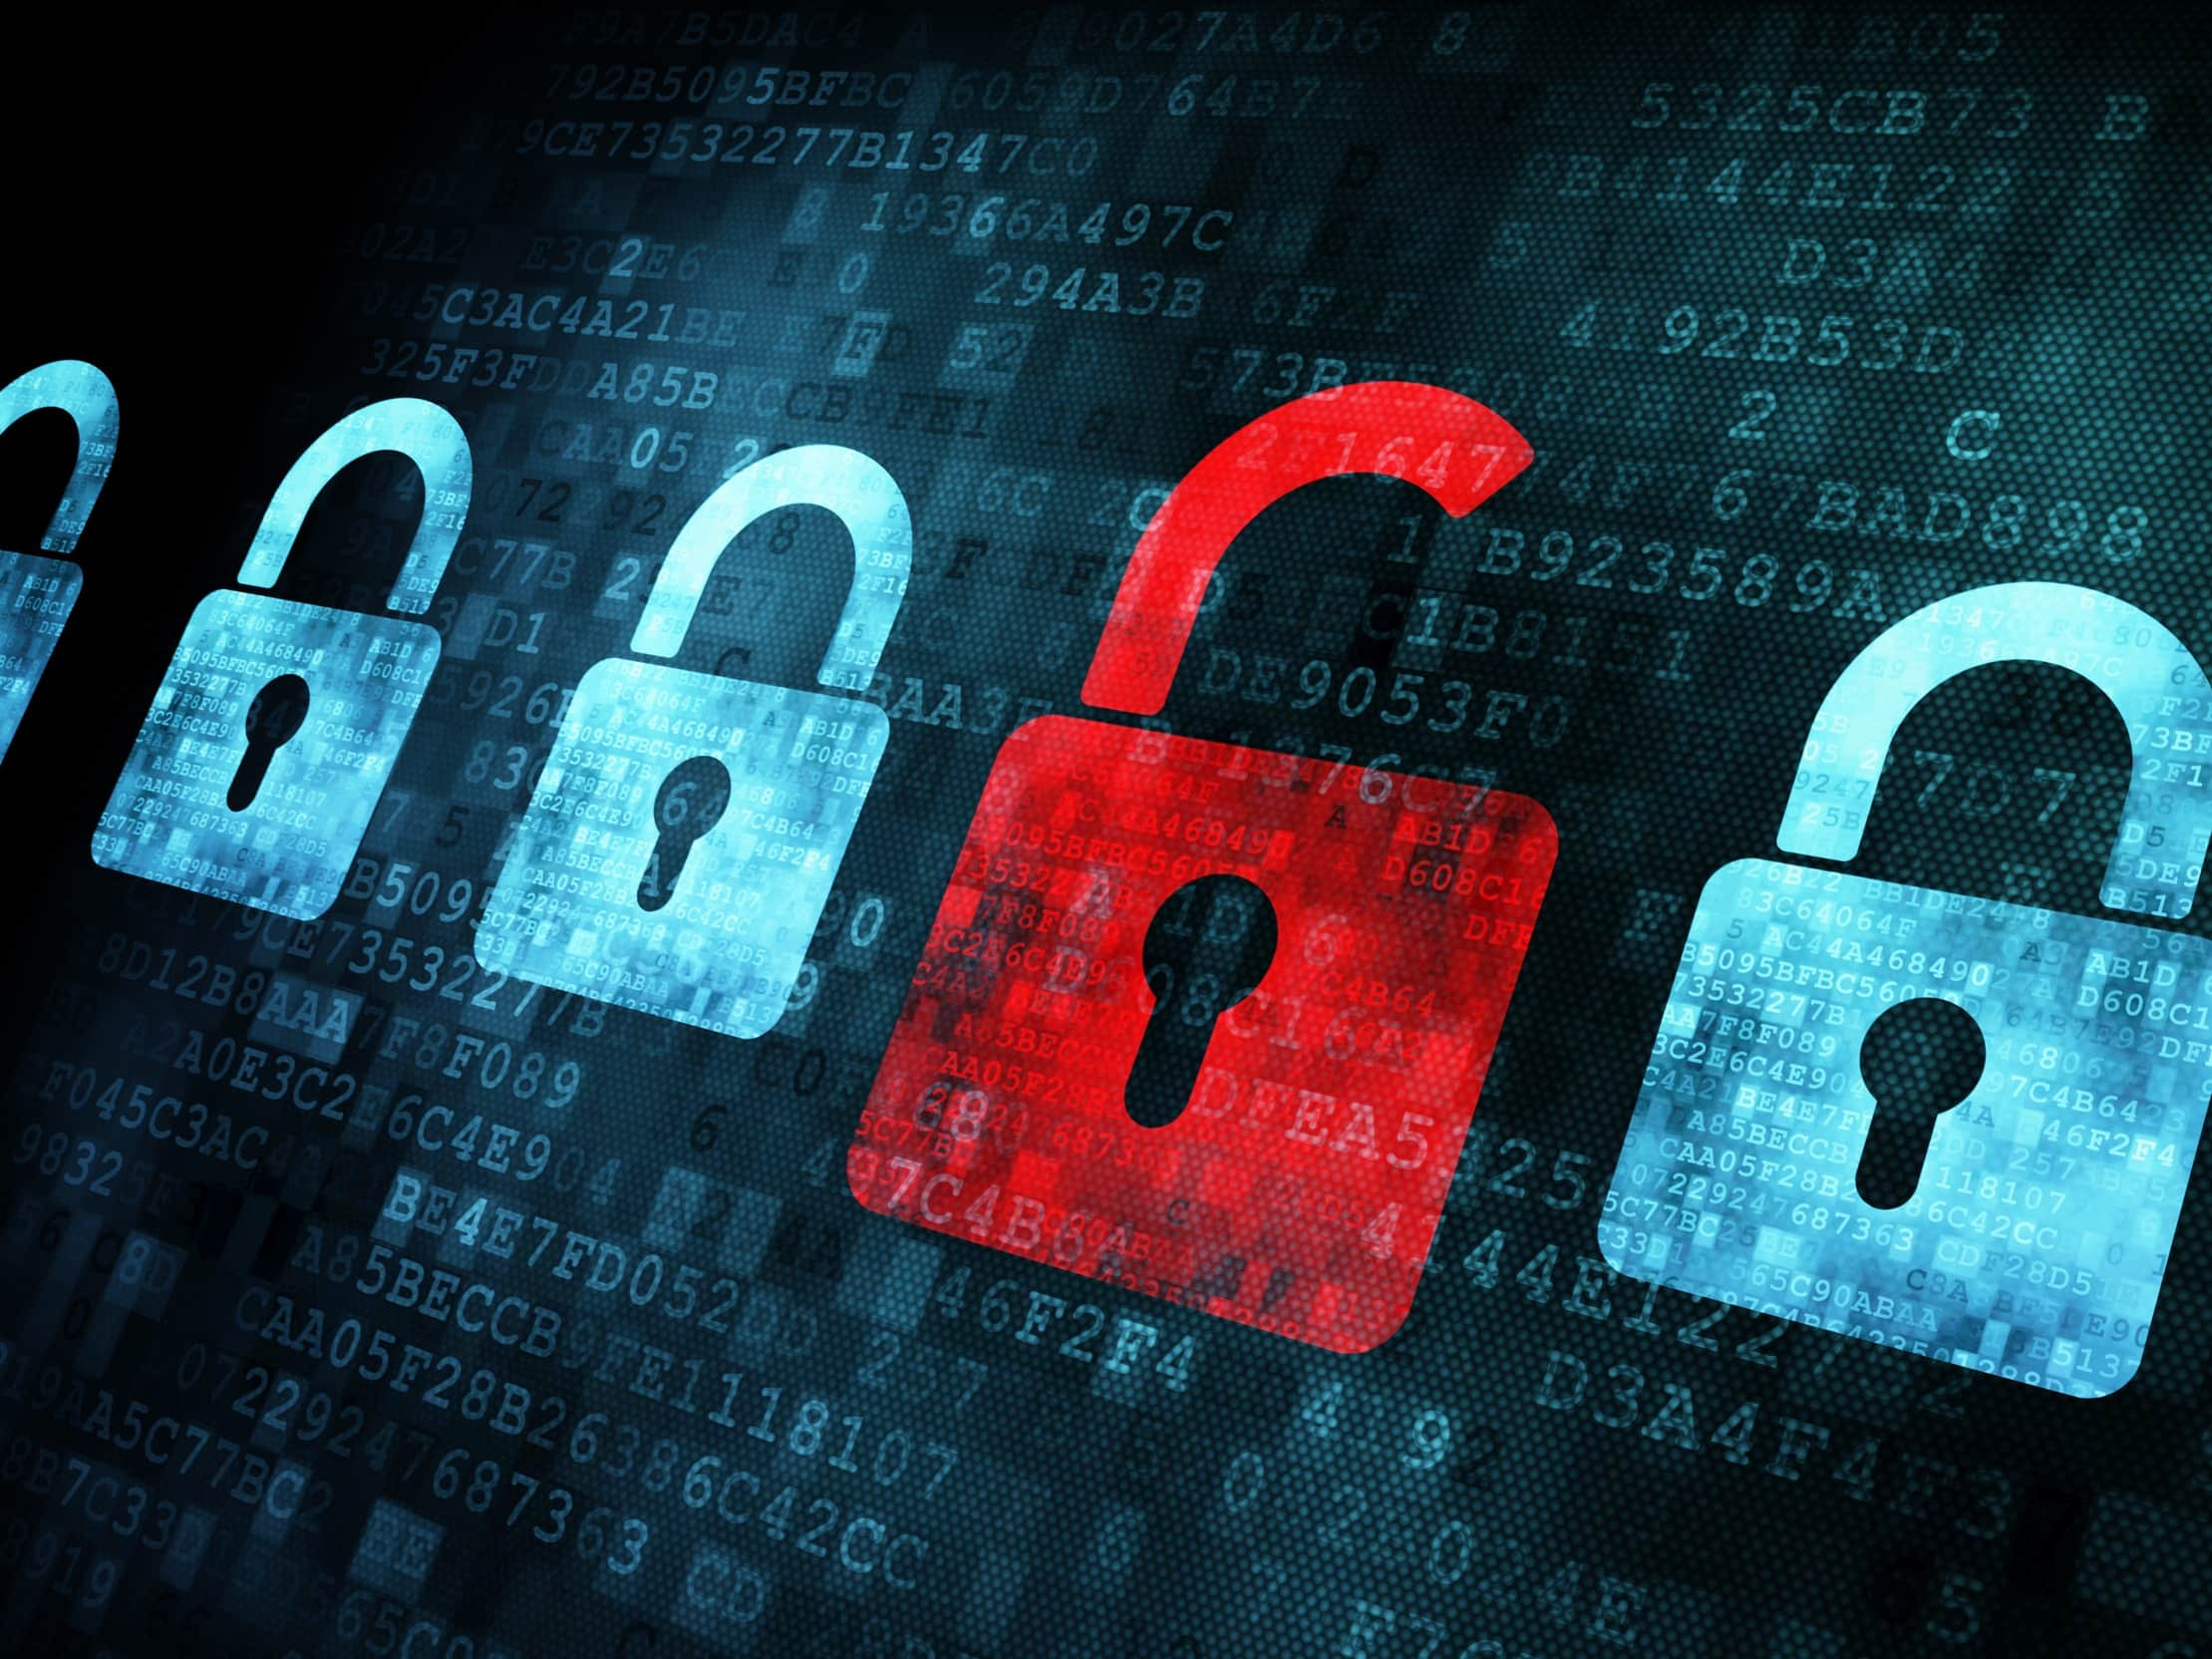 content/en-gb/images/repository/isc/types-of-cybercrimes-tips.jpg